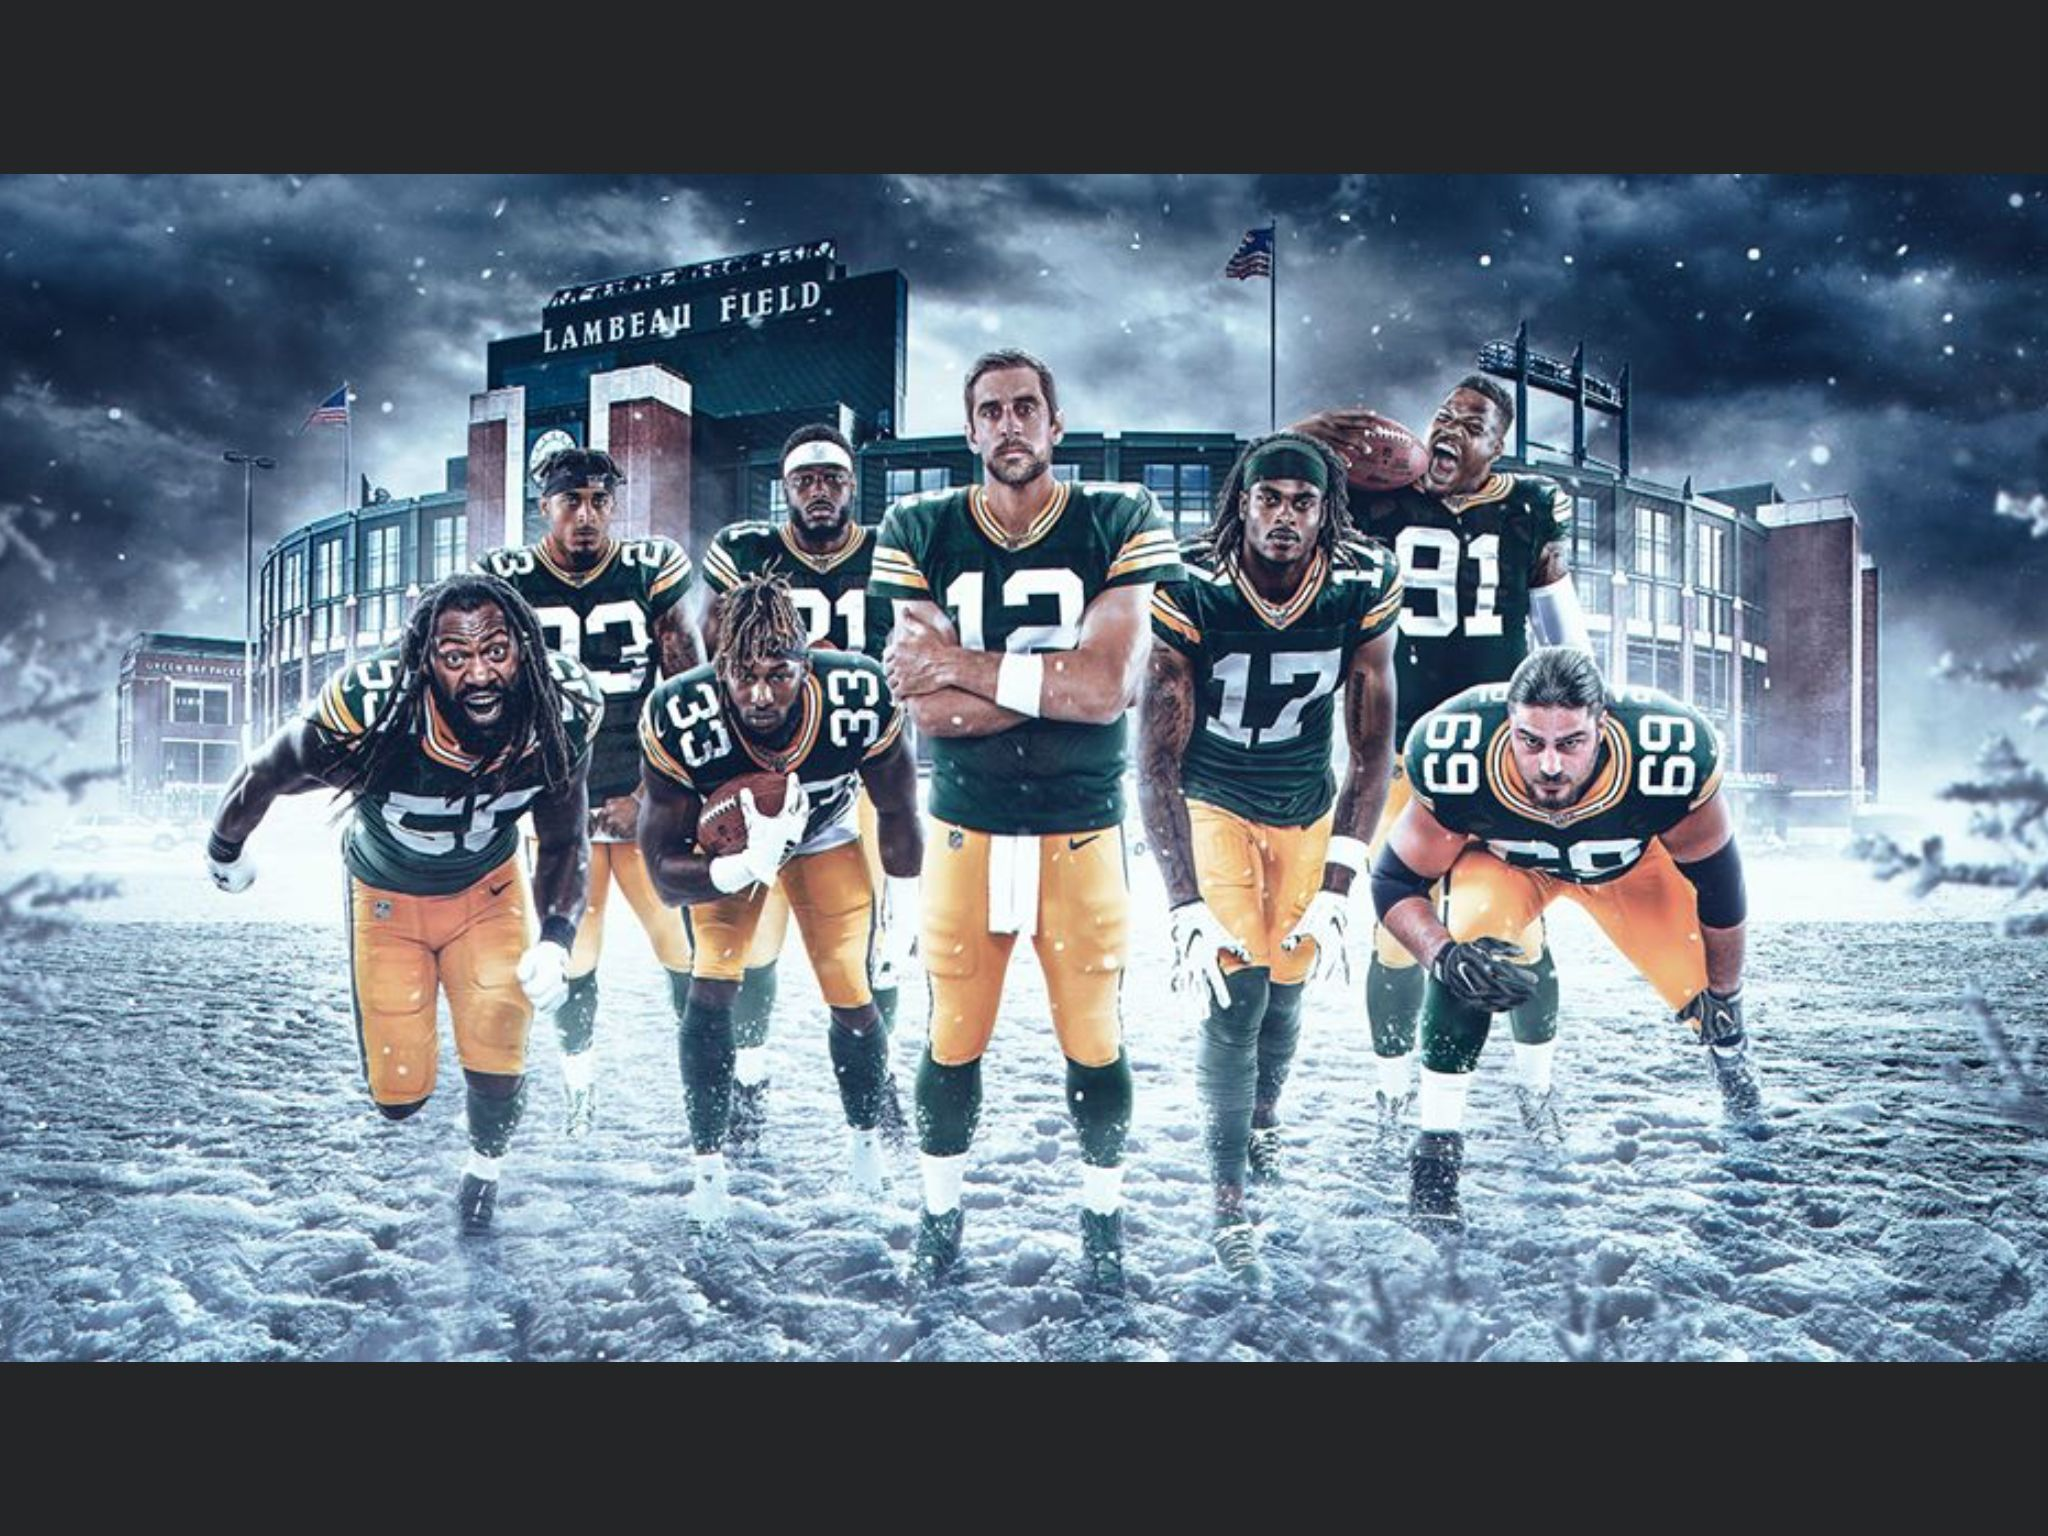 Pin By Jamie Culvahouse On Packers In 2020 Green Bay Packers Wallpaper Green Bay Packers Logo Green Bay Packers Meme